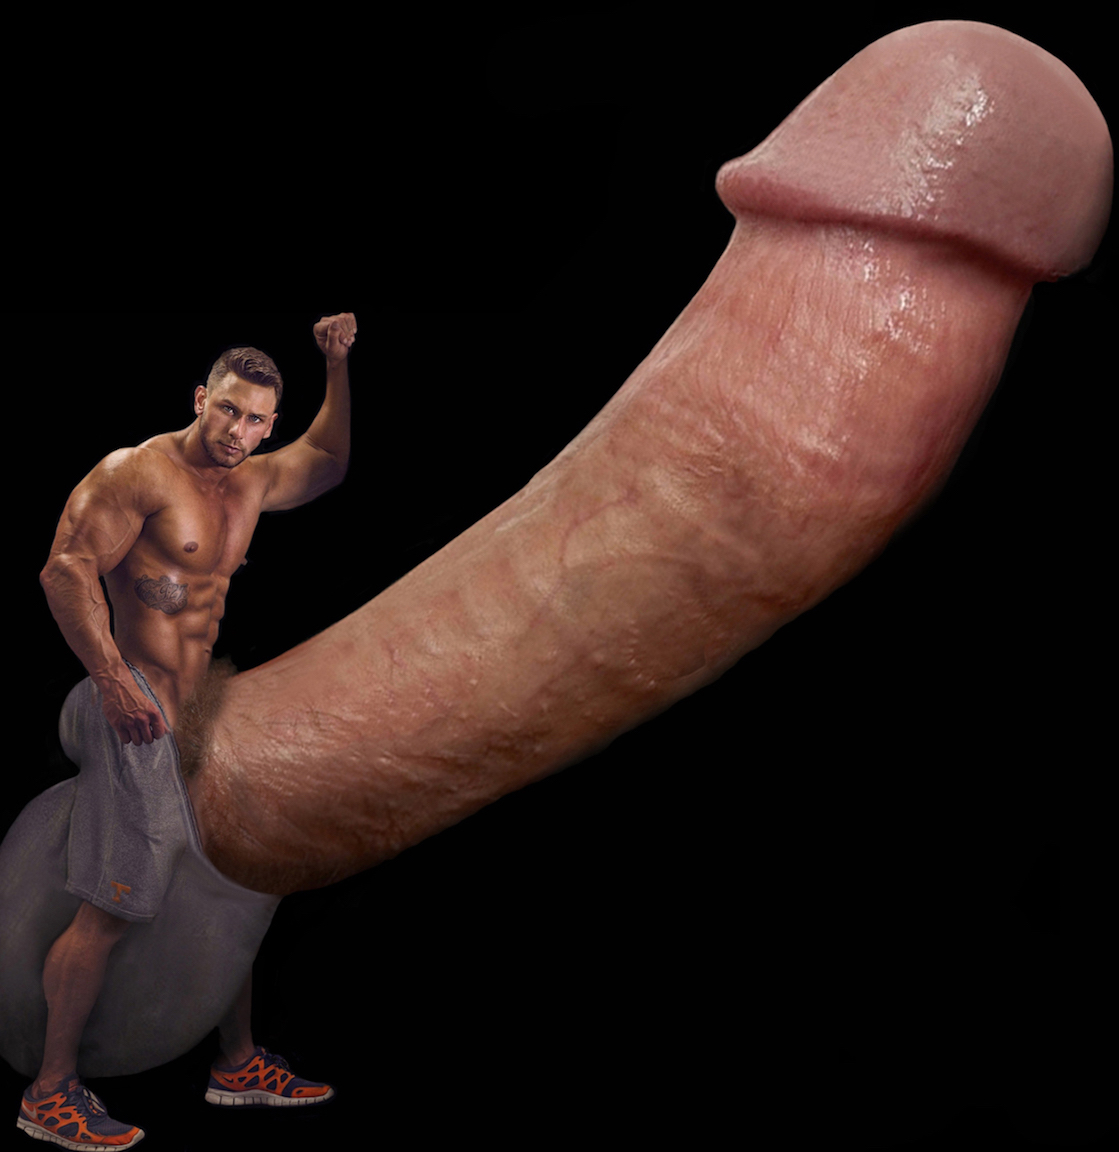 Biggest world dick s